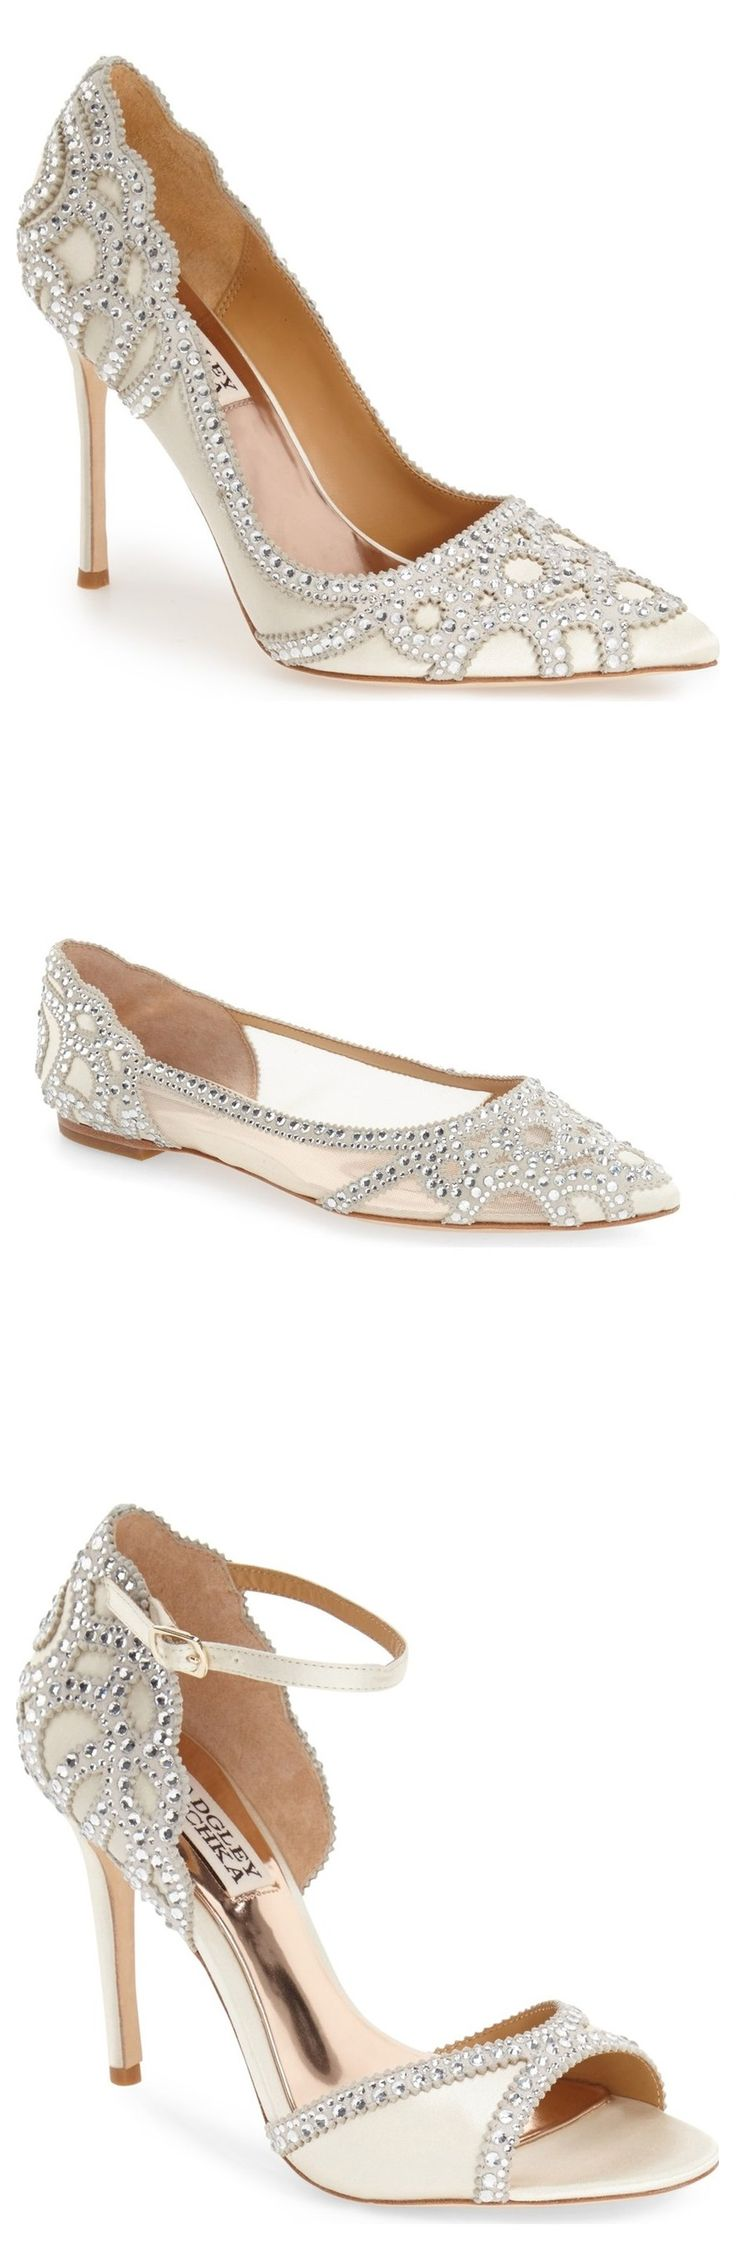 Stunning bridal shoes Bride shoes flats, Wedding shoes